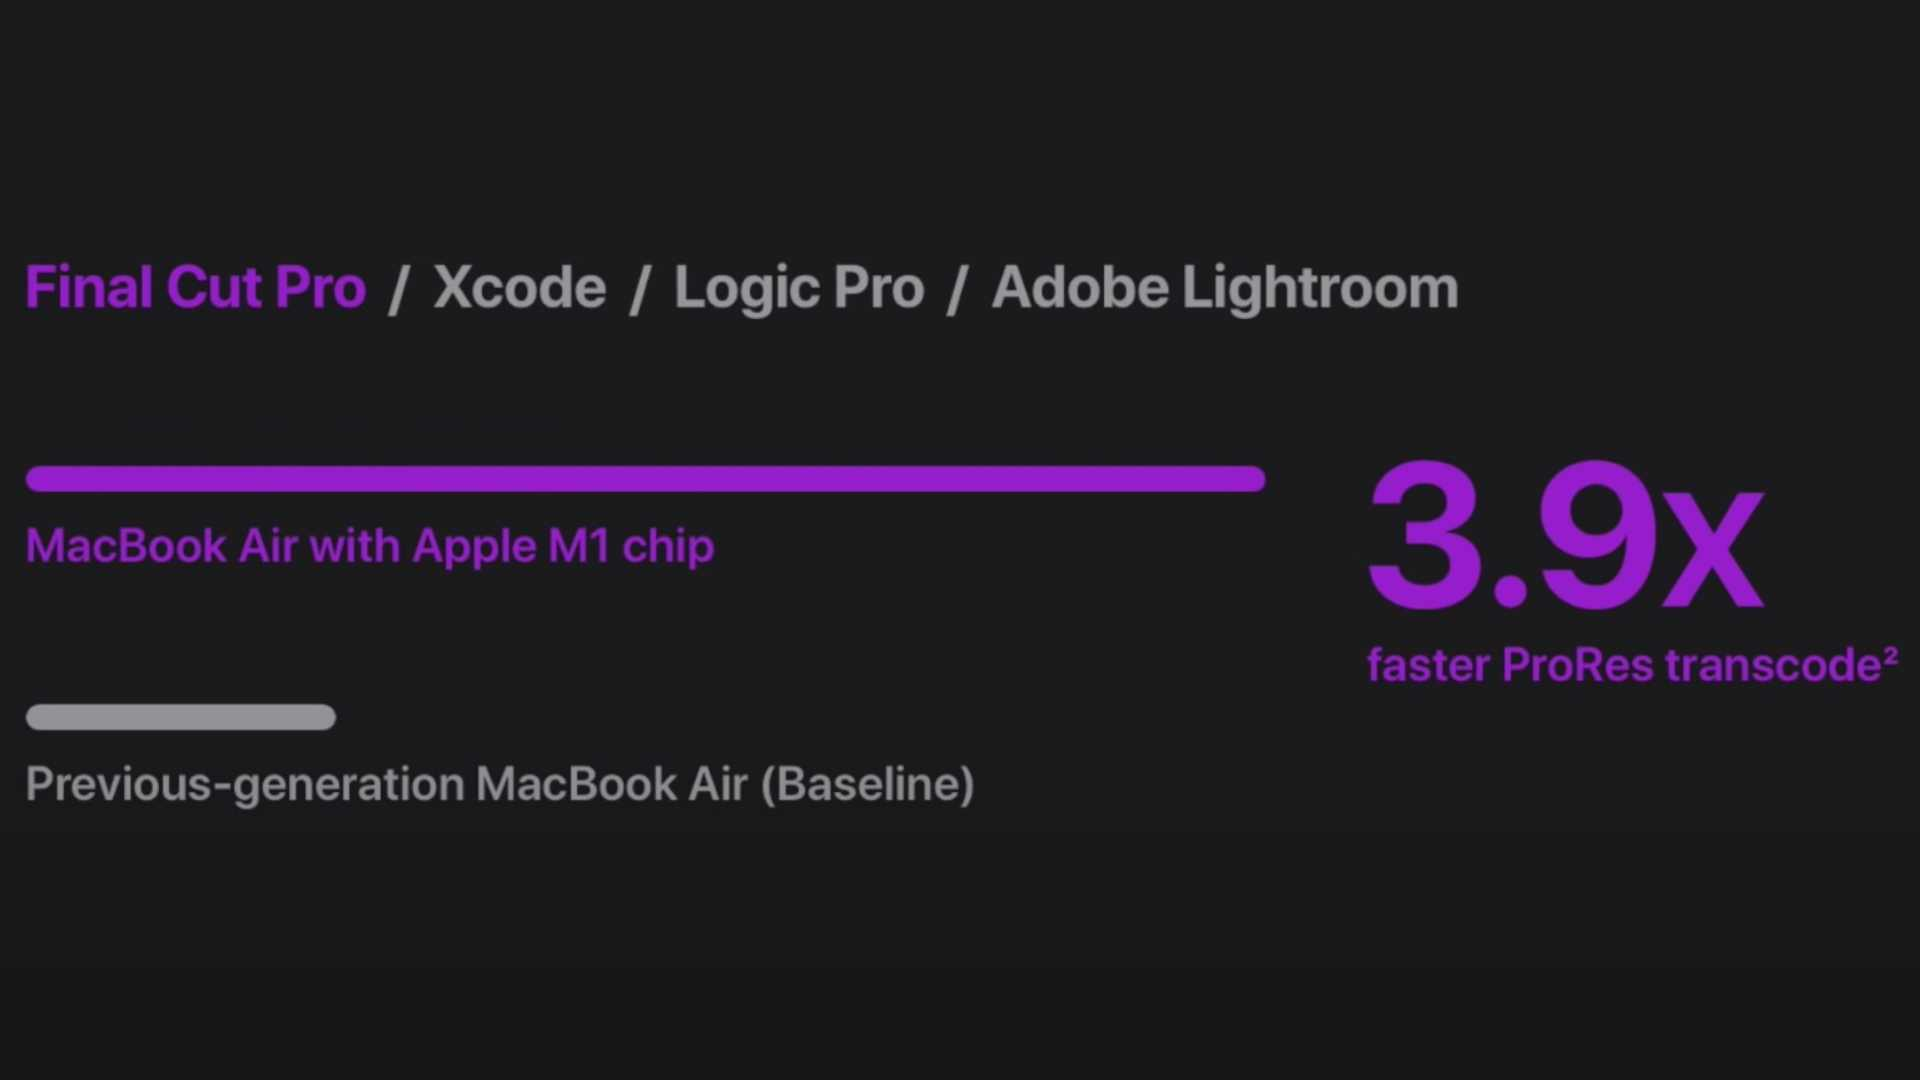 M1 MacBook Air does ProRes transcode 3.9 times faster than 2019 MacBook Air.